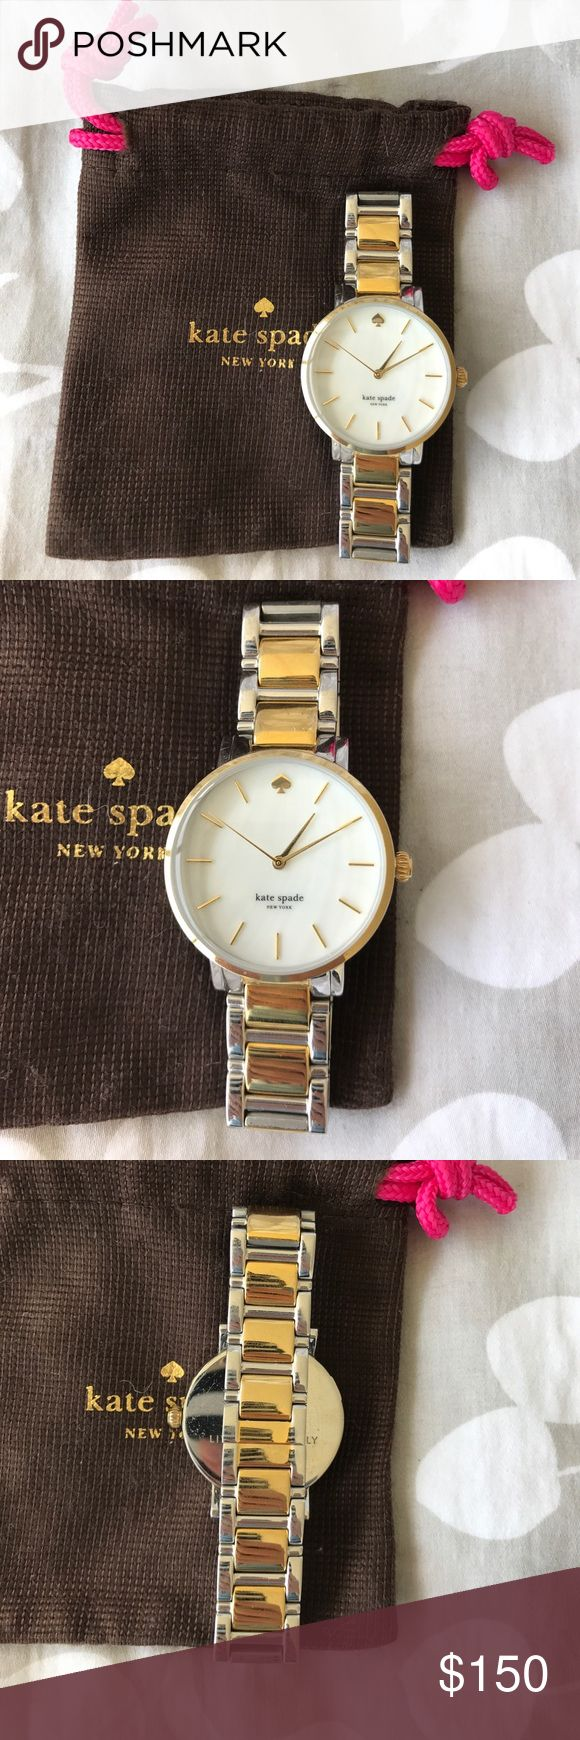 Kate Spade watch Kate Spade Gramercy watch. Two tone gold and silver. Barely ever worn. Battery is dead. kate spade Accessories Watches